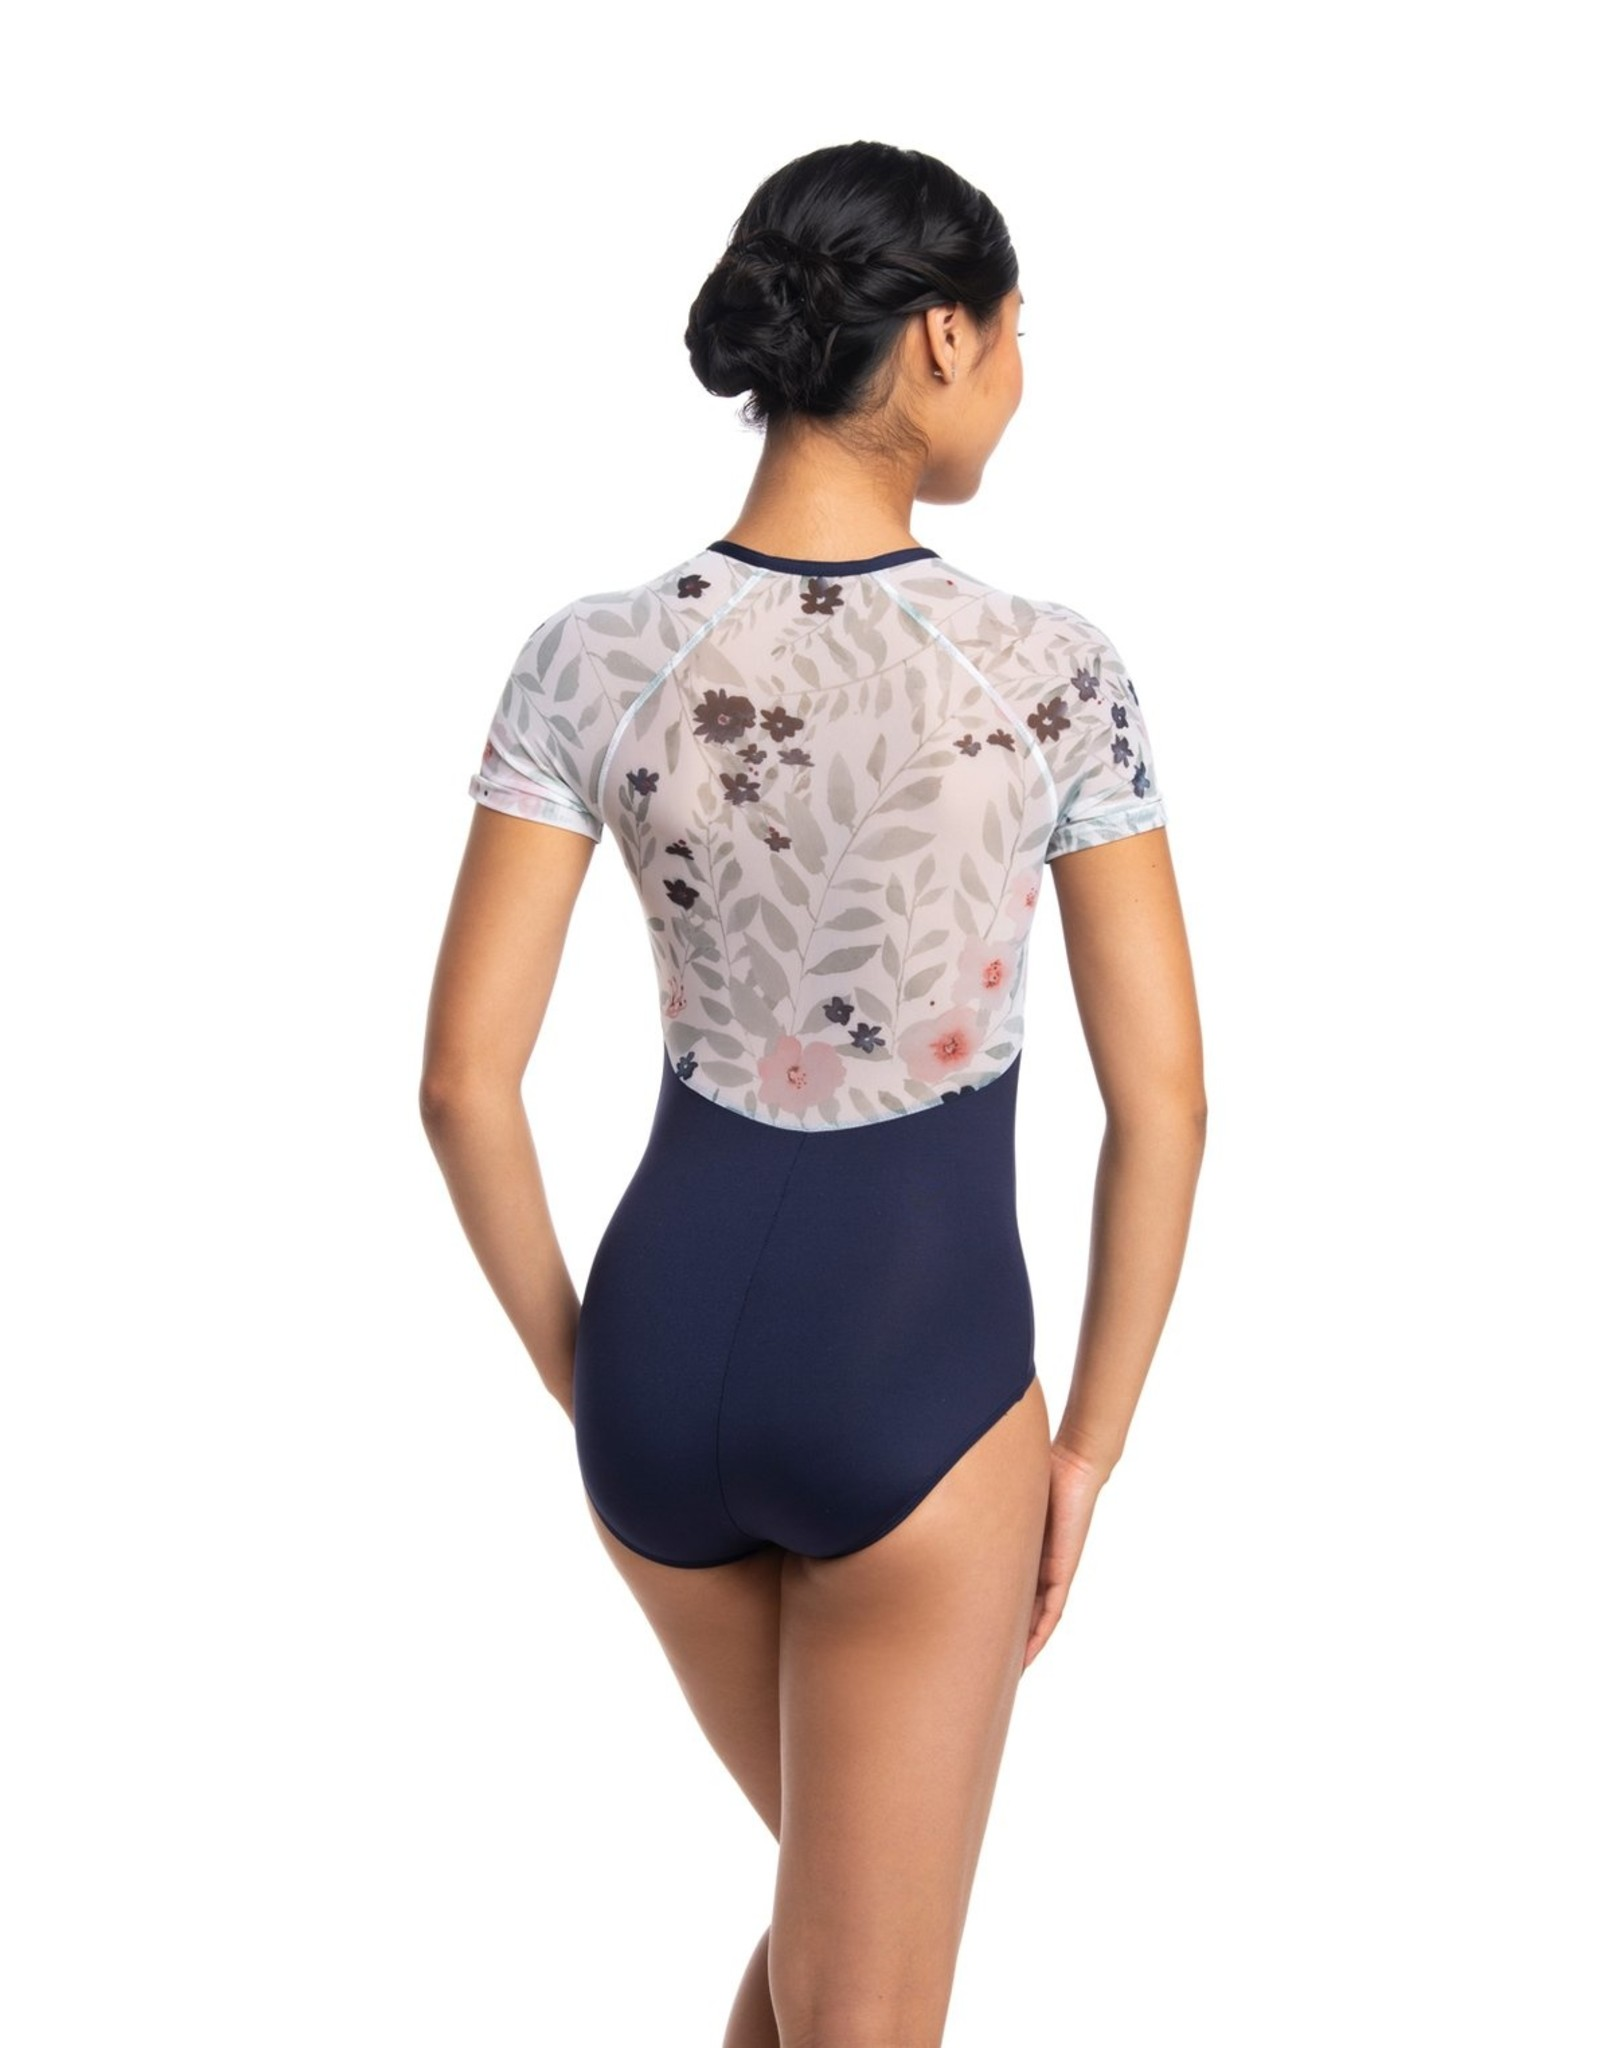 AINSLIEWEAR EMILY LEOTARD WITH PASTEL BLOOM PRINT